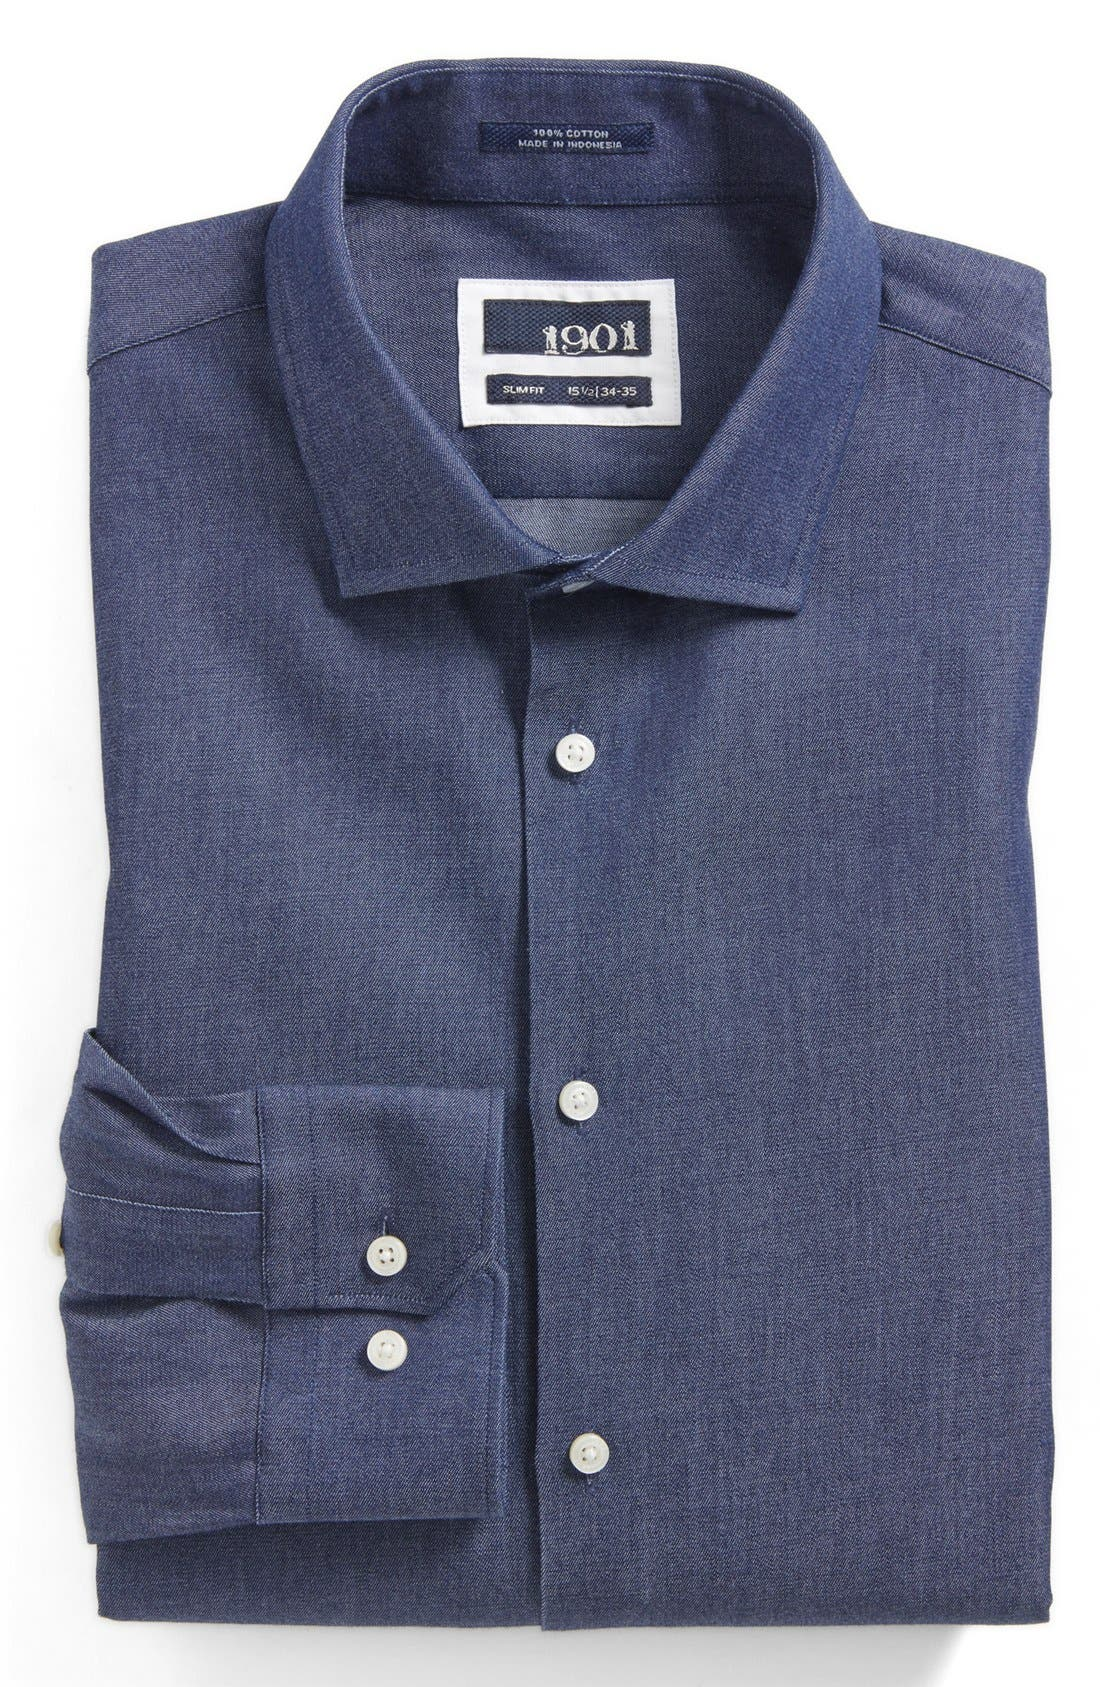 Main Image - 1901 Extra Trim Fit Dress Shirt